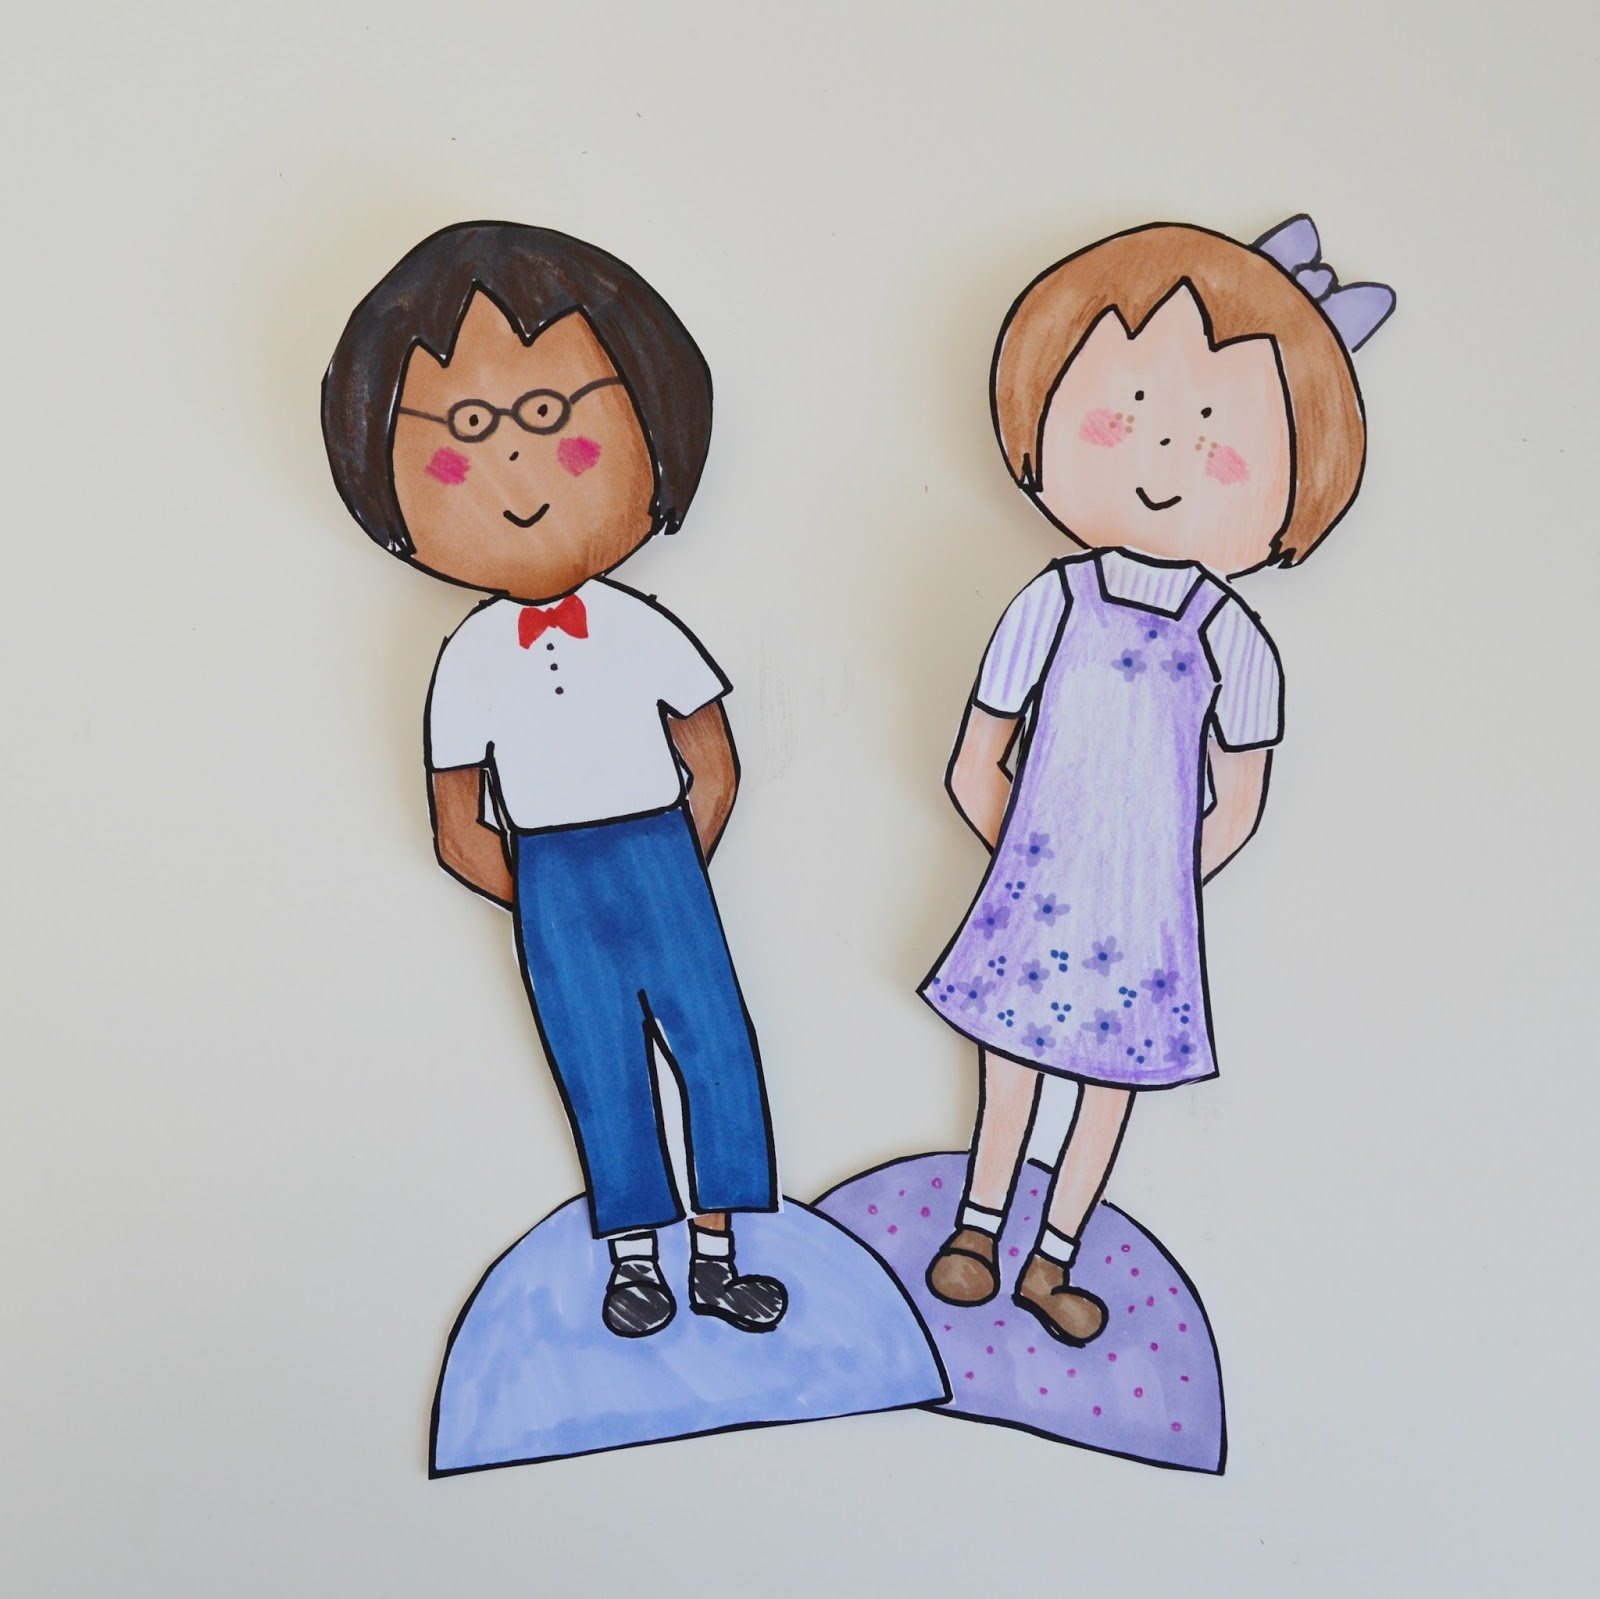 Snugglebug University Fairy Tale Paper Dolls And A Free Paper Doll